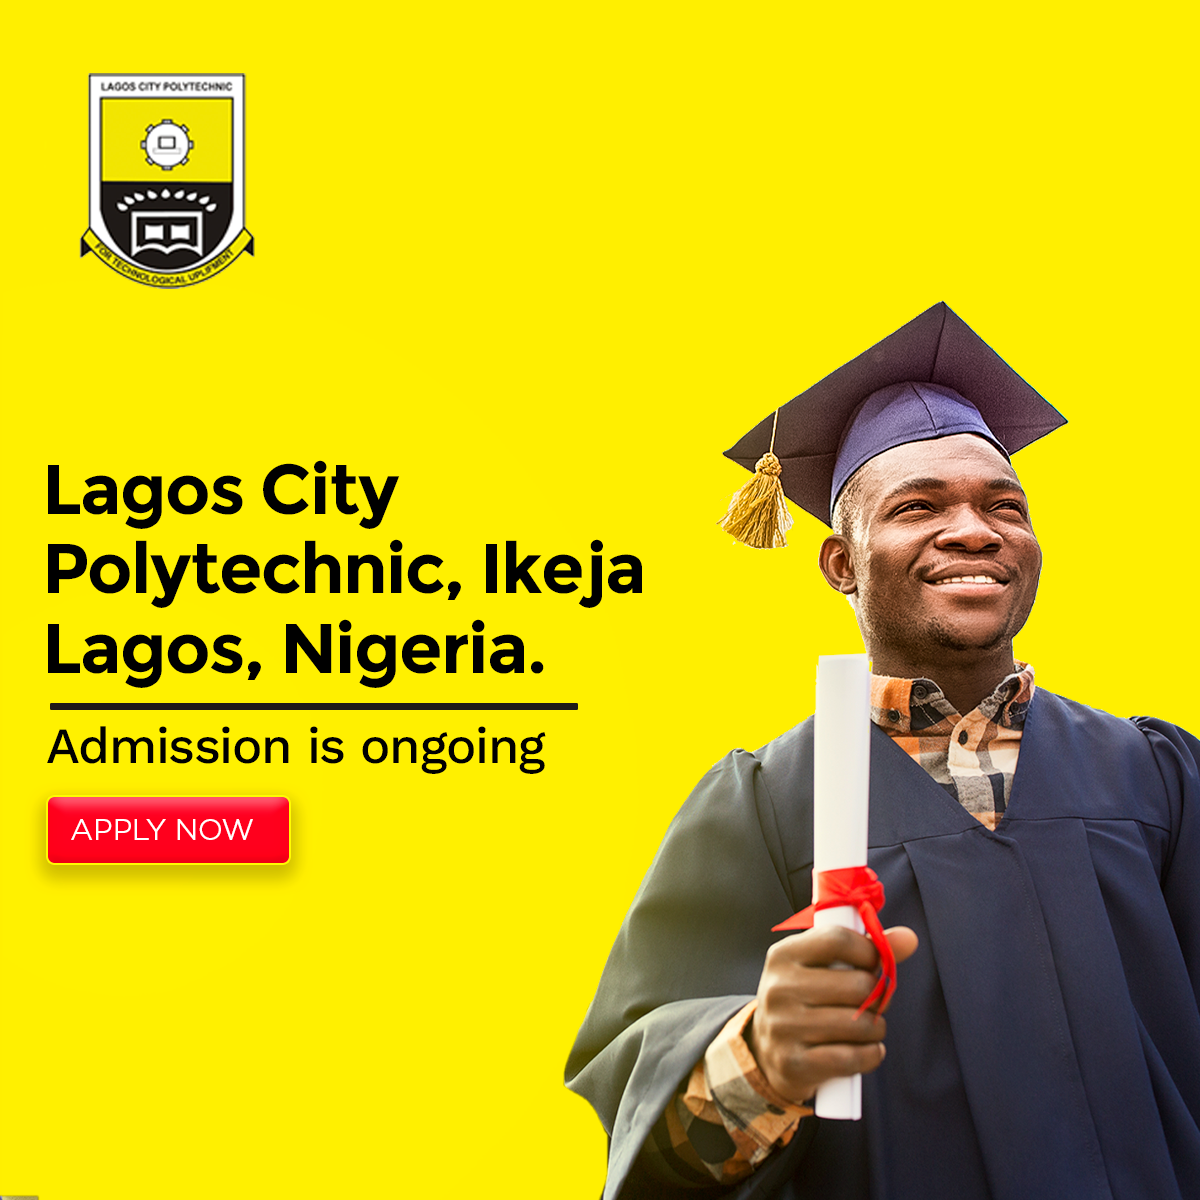 Calls for Application for Admission to the Lagos City Polytechnic